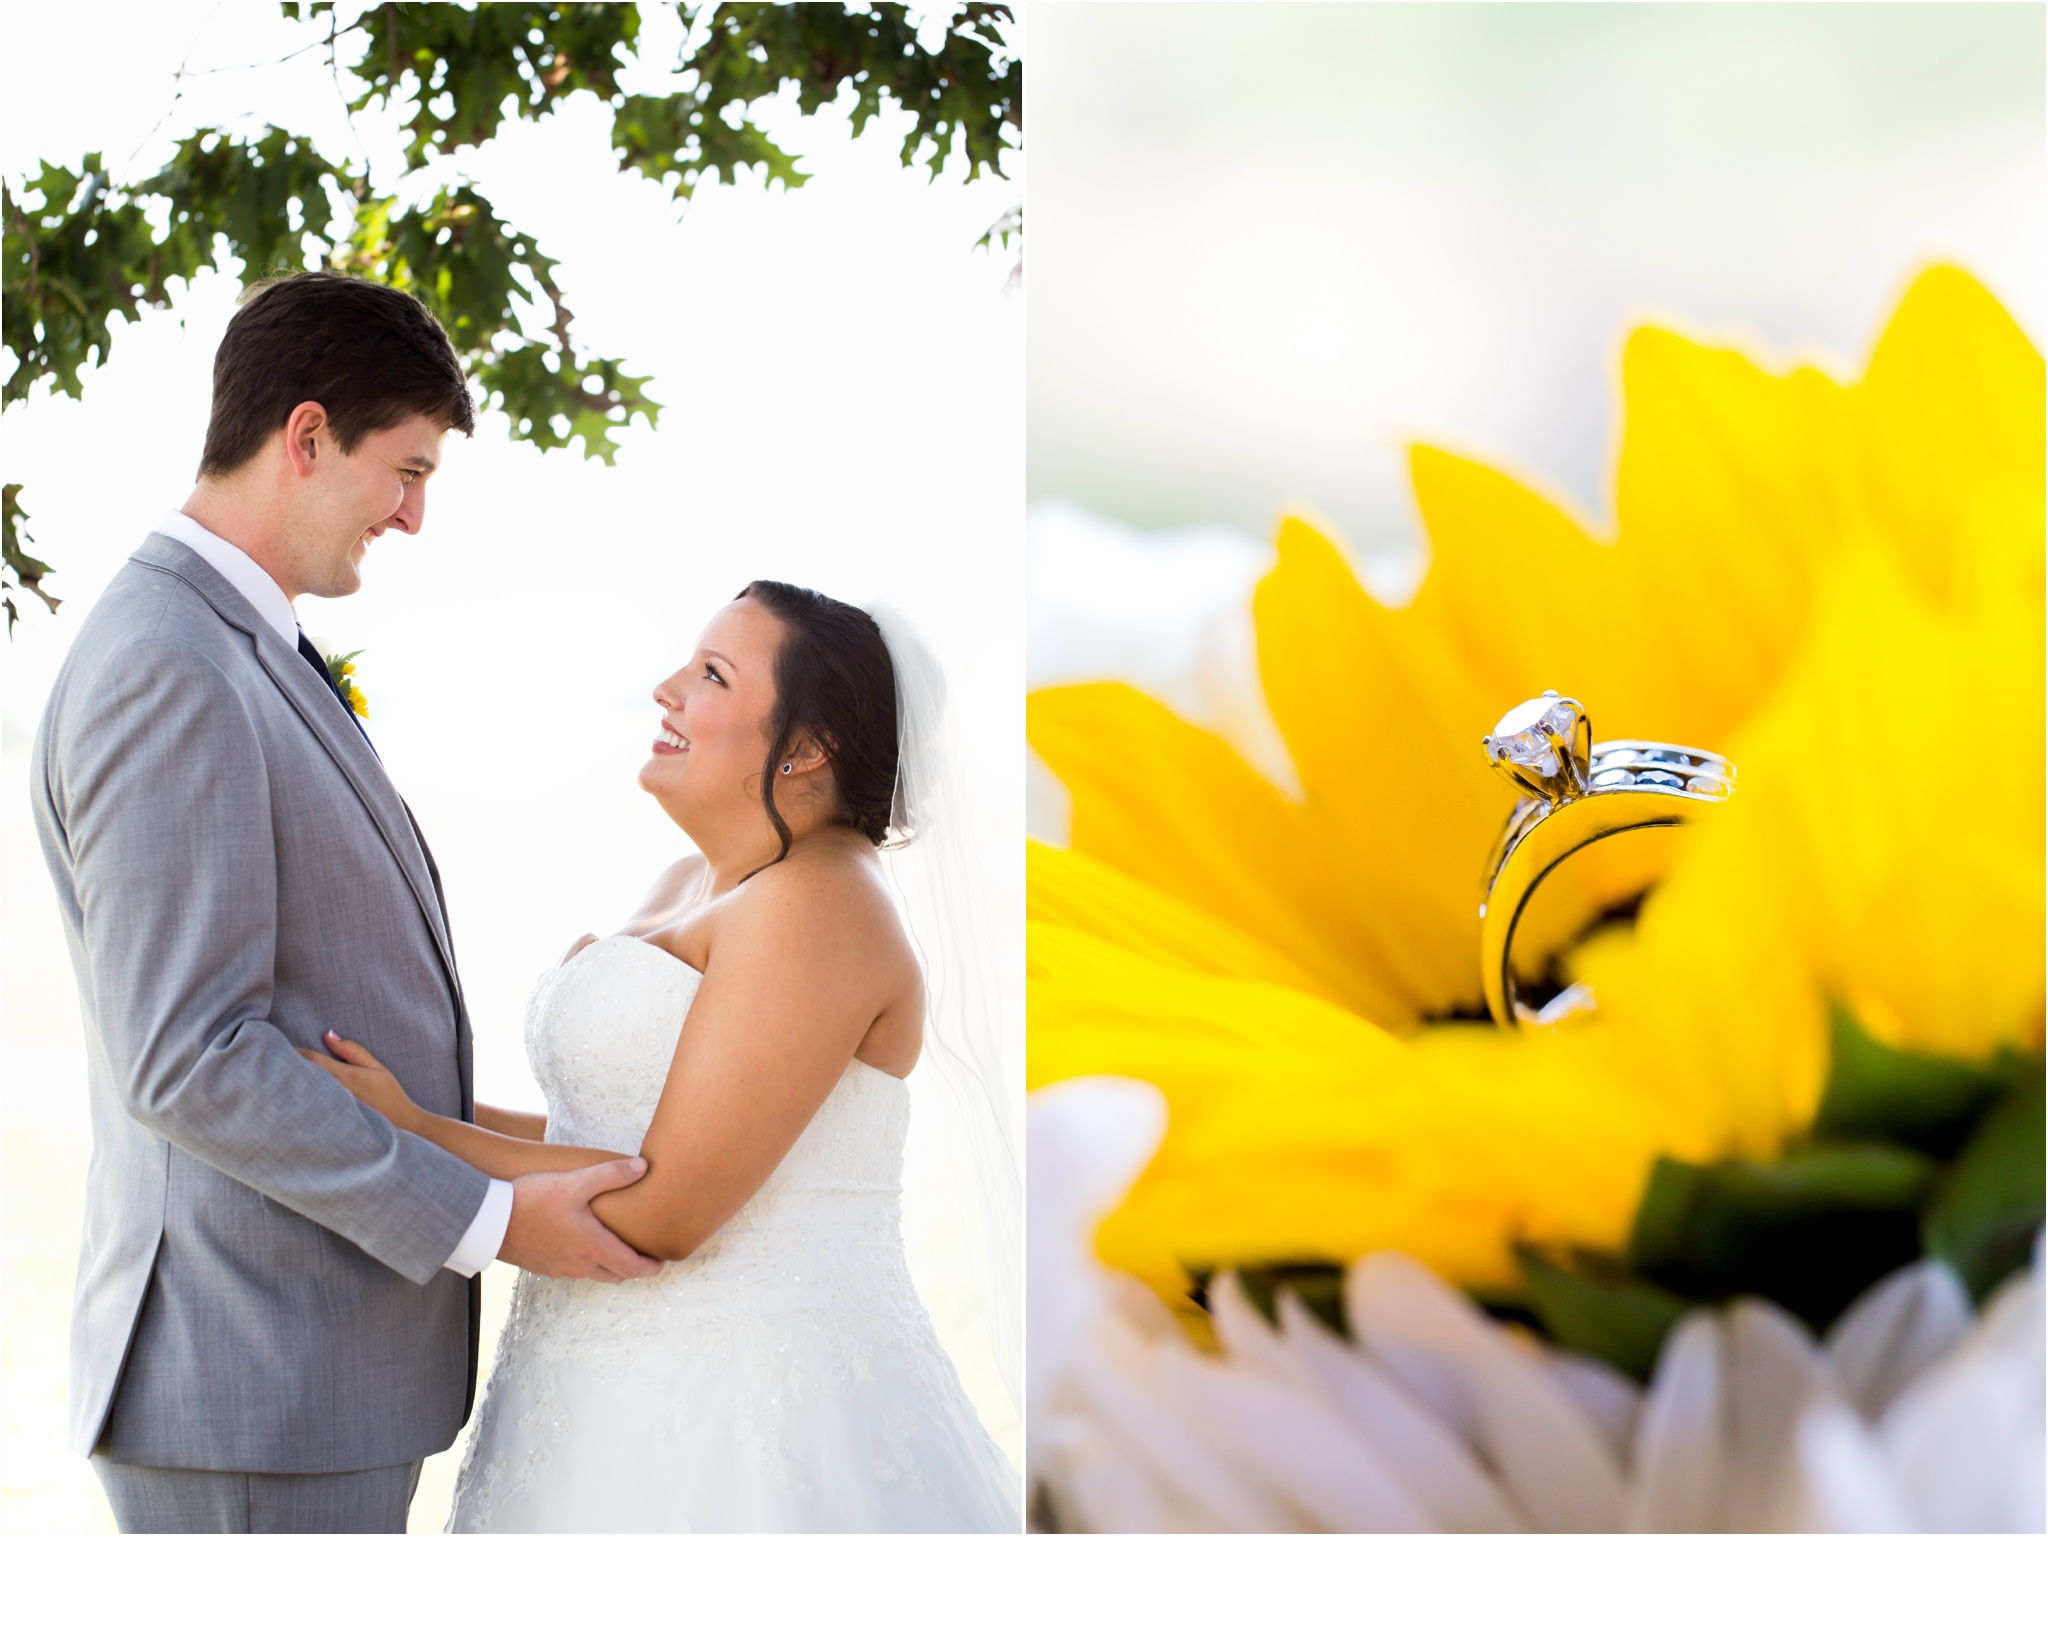 Rainey_Gregg_Photography_St._Simons_Island_Georgia_California_Wedding_Portrait_Photography_0304.jpg